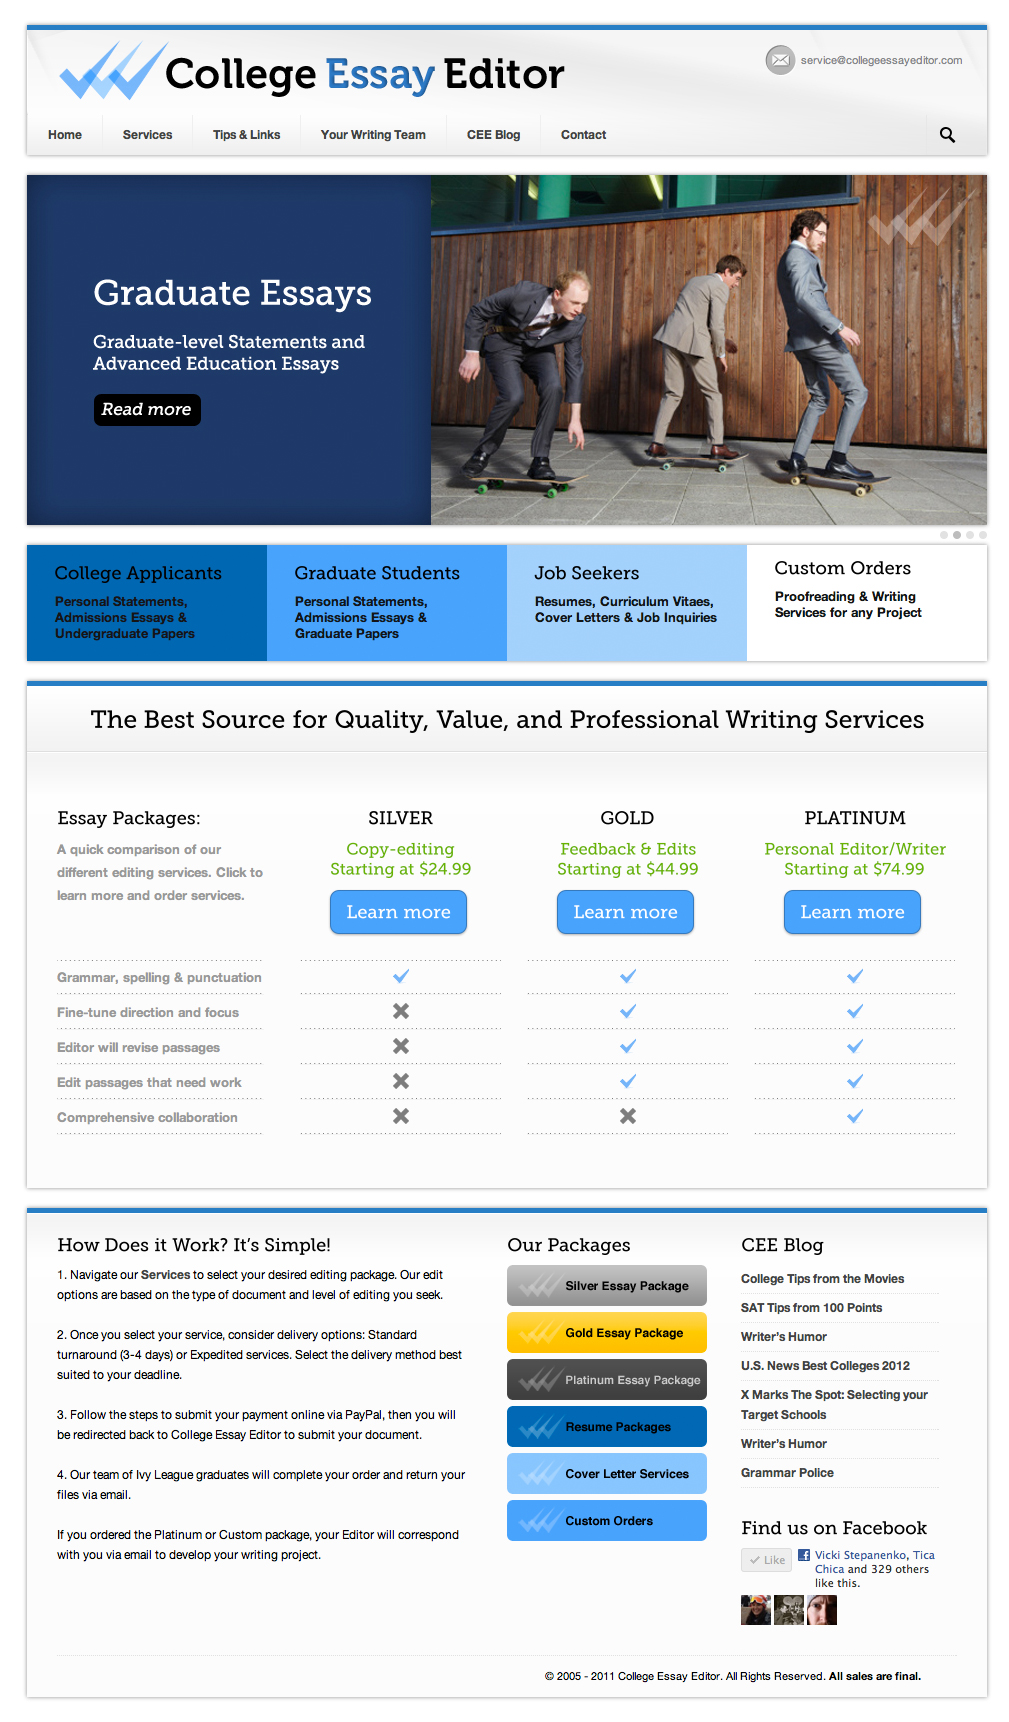 Dissertation Writing Service Usa Of 2011